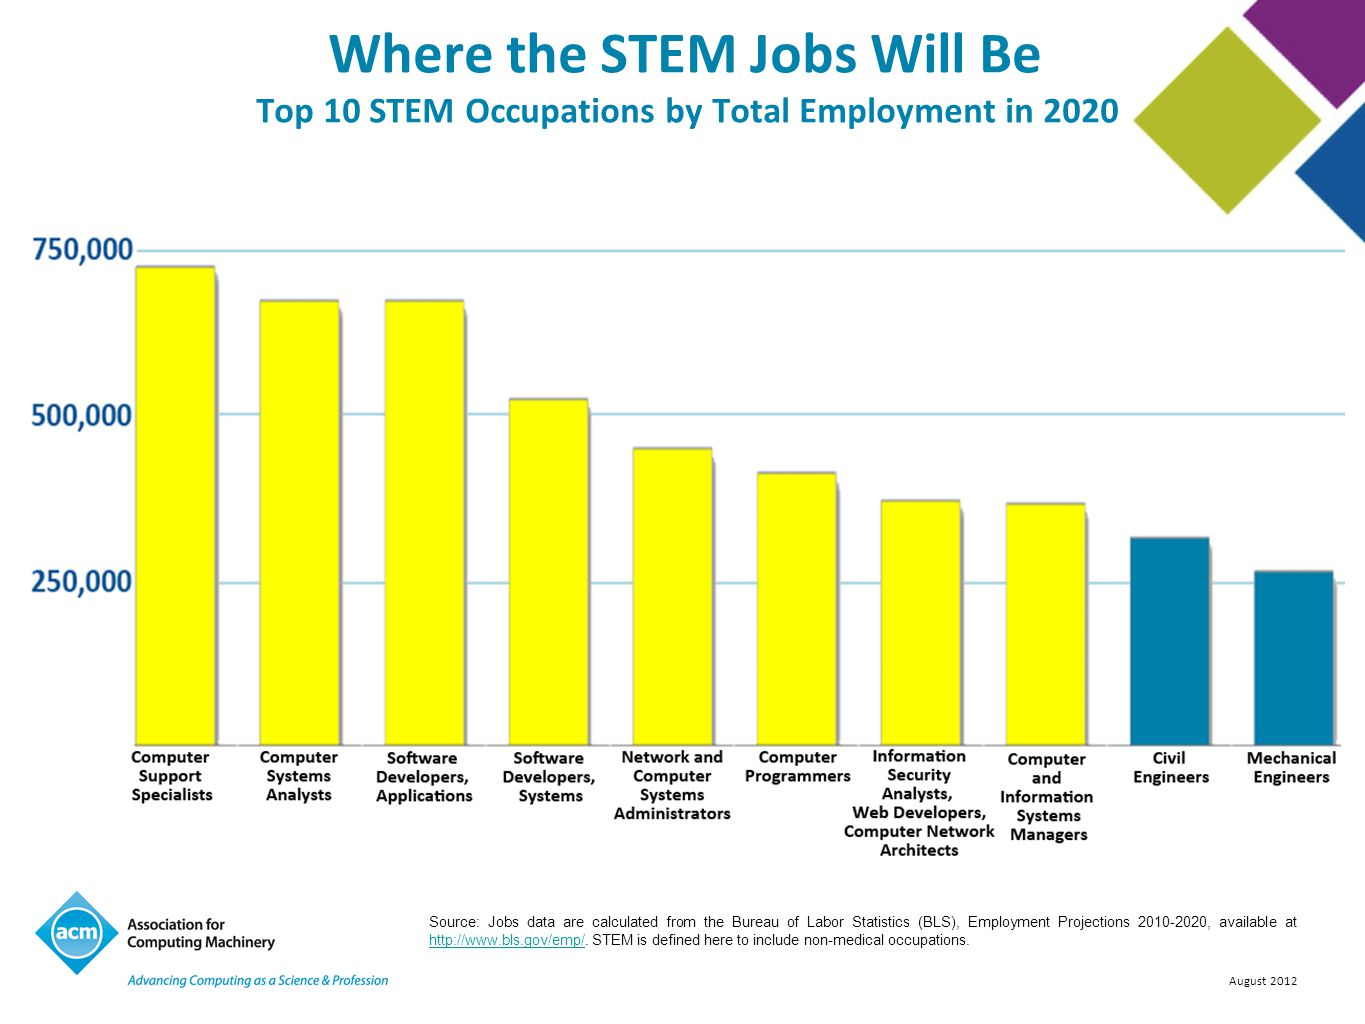 Where the STEM Jobs Will Be Top 10 STEM Occupations by Total Employment in 2020